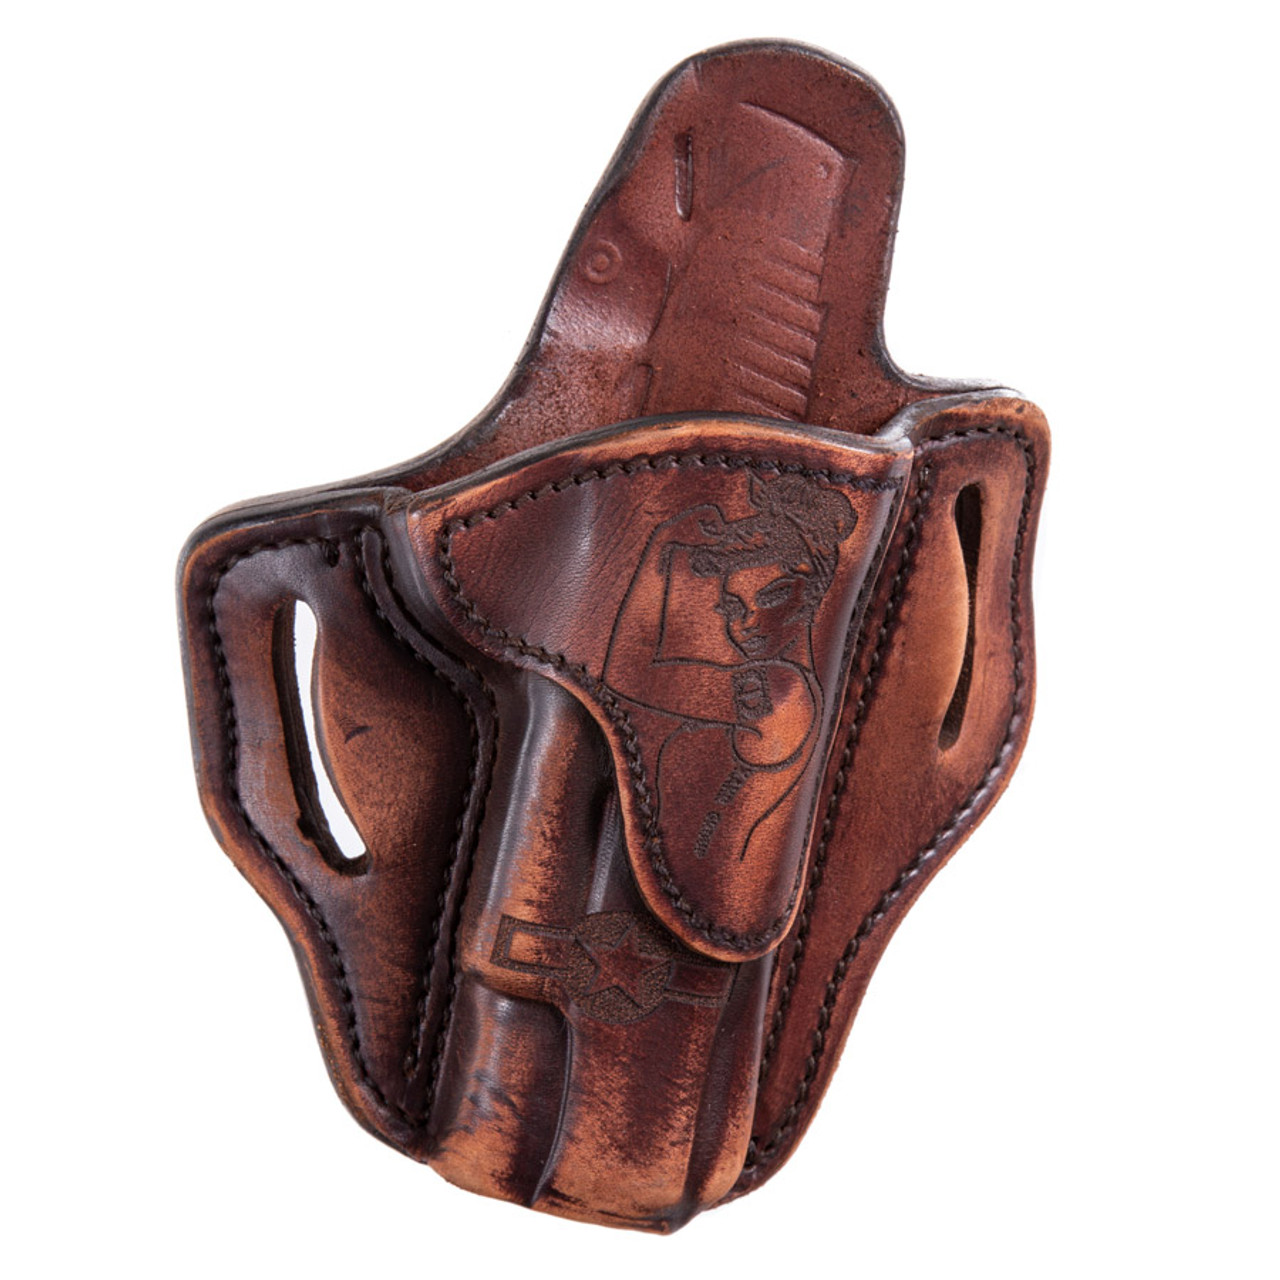 1911 OWB Leather Holster w/ Victory Girl, RH/LH